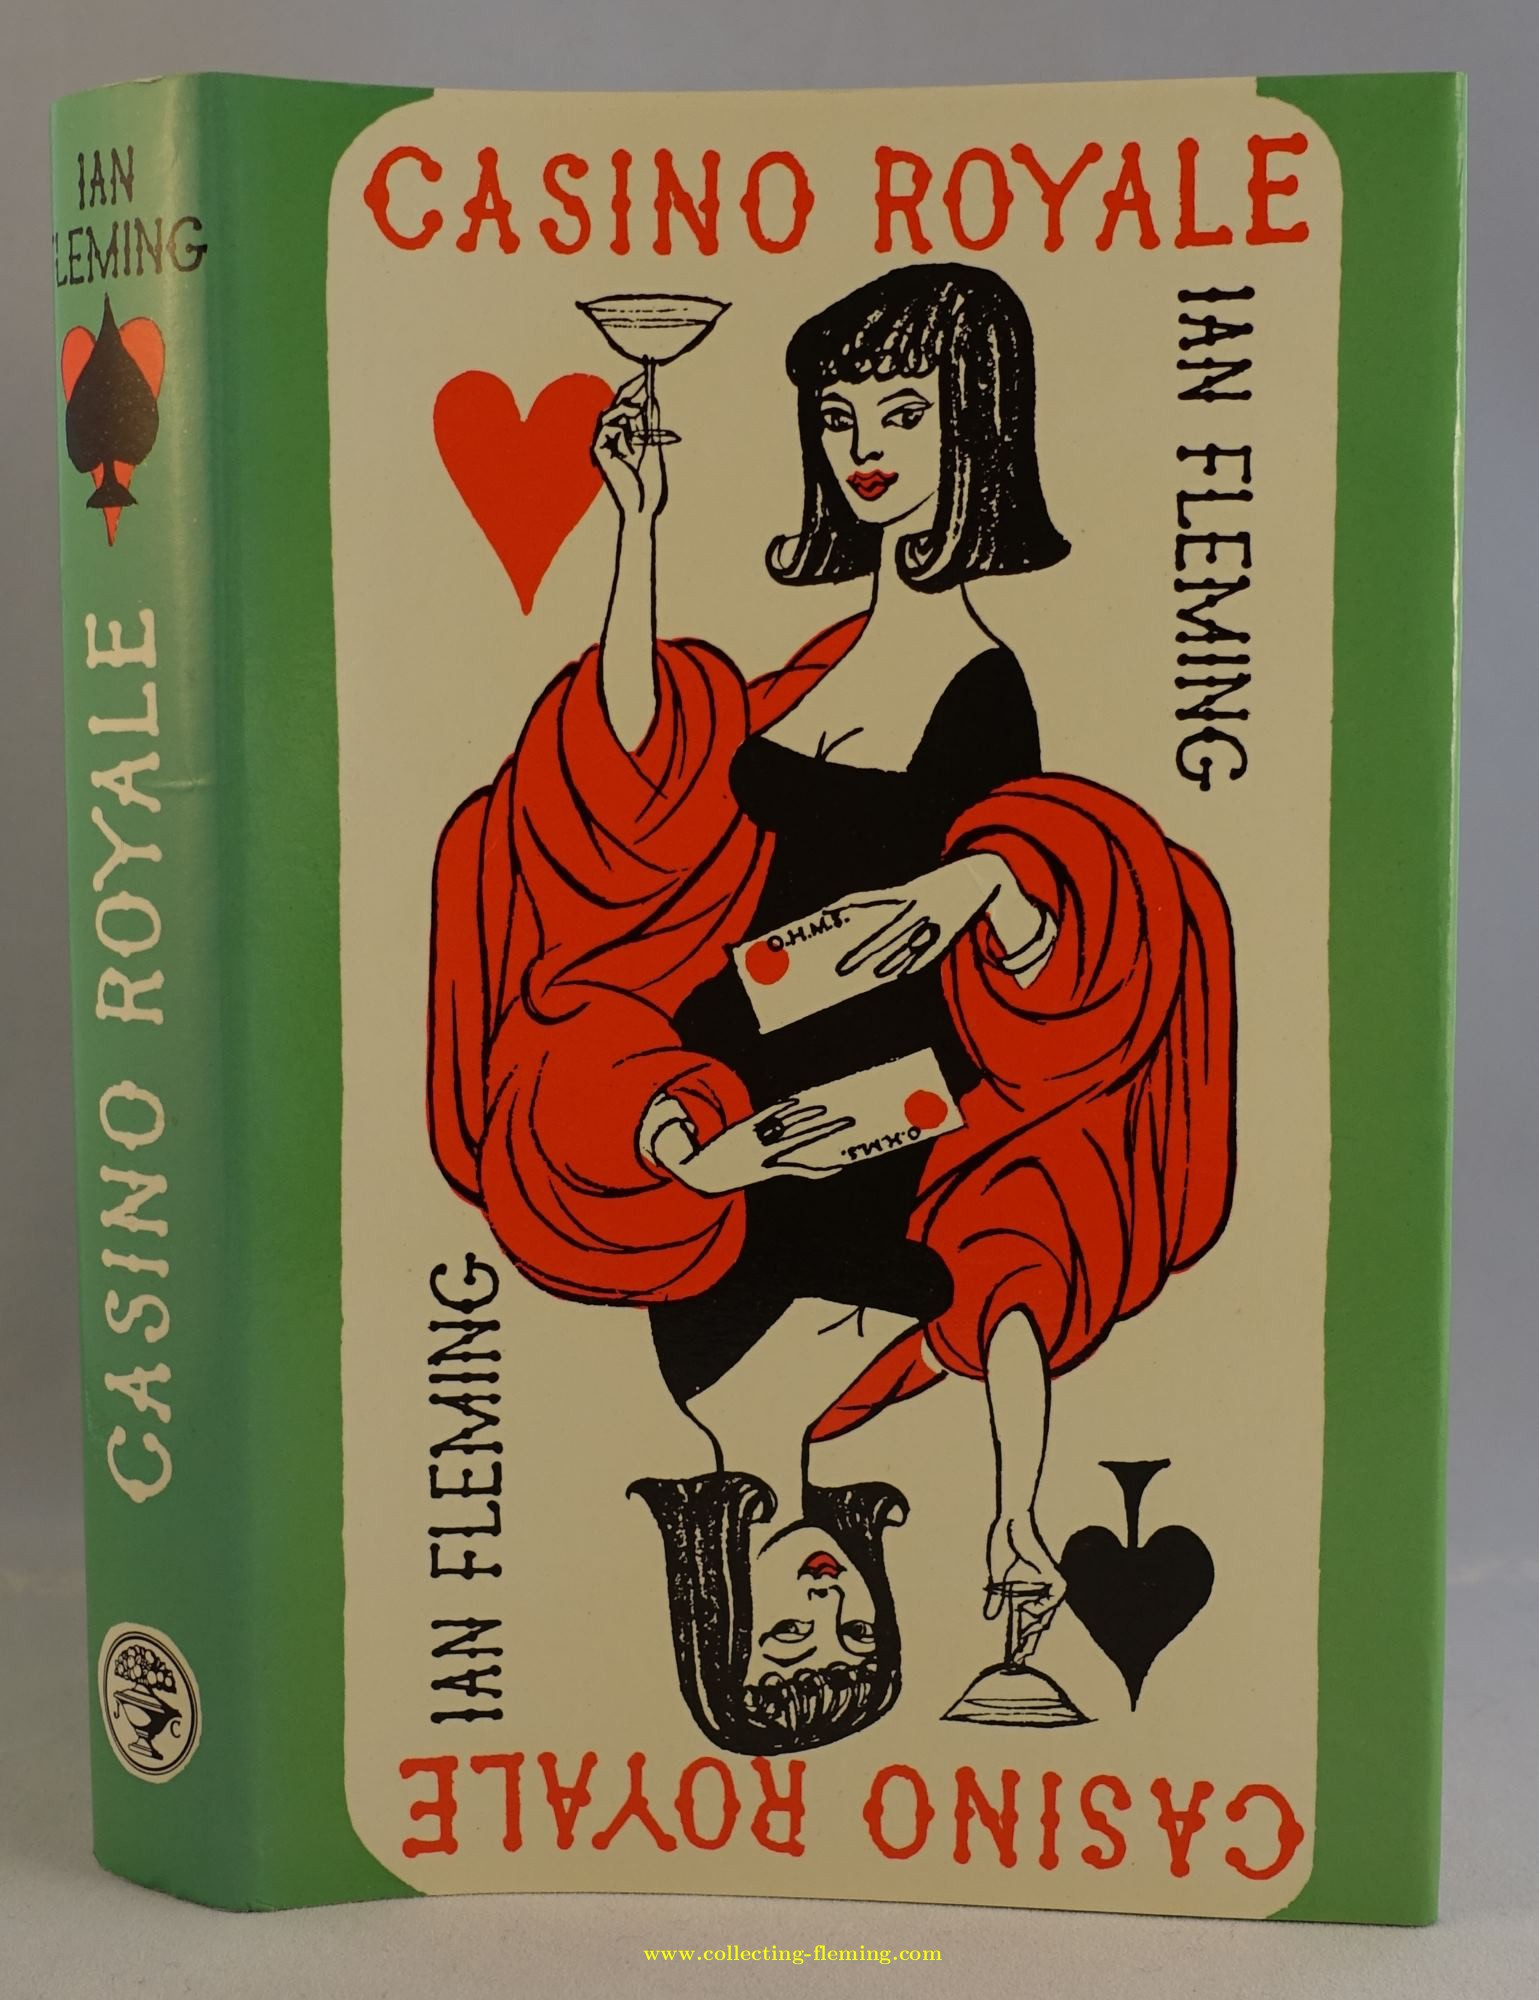 Read Casino Royale online free by Ian Fleming